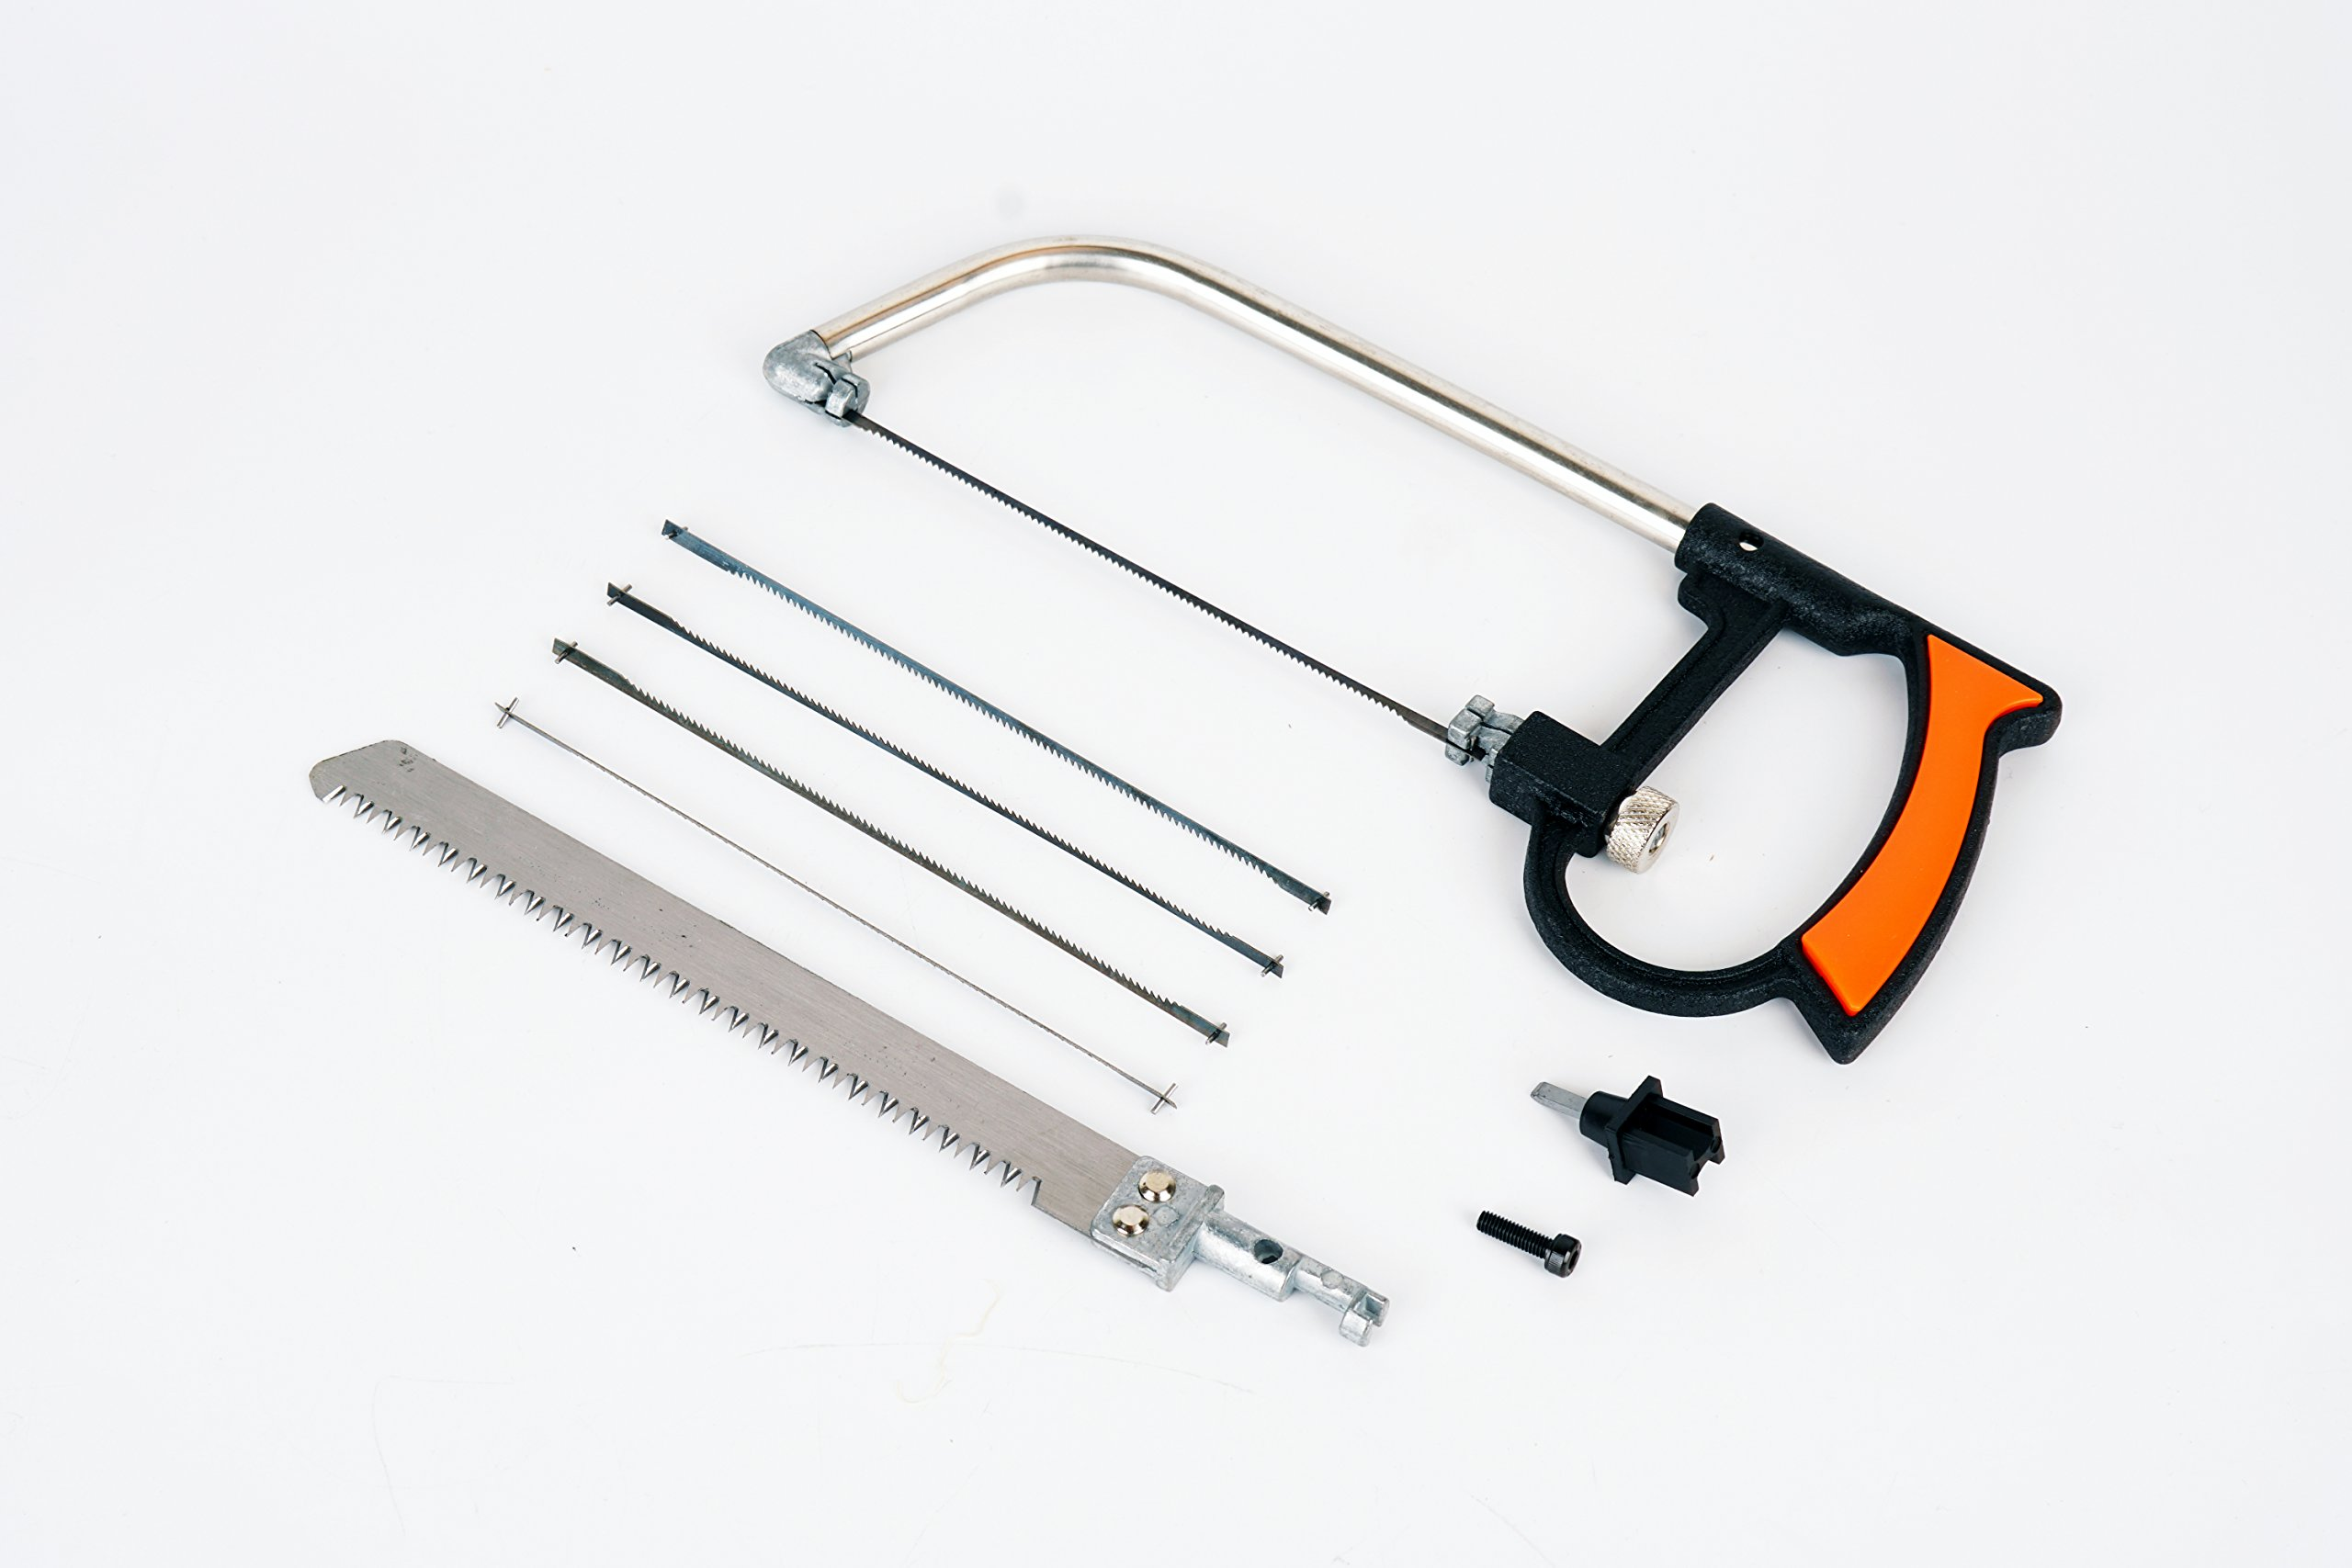 Mini suit handsaw JCT 8pc Magic Universal Hand Saw Kit Toolbox Of Multi Blades Set Works As Hacksaw Coping Bow Jab Rip Pruning Chain Handsaws A Cutter Suitable To Cut Wood PVC Pipes Glass